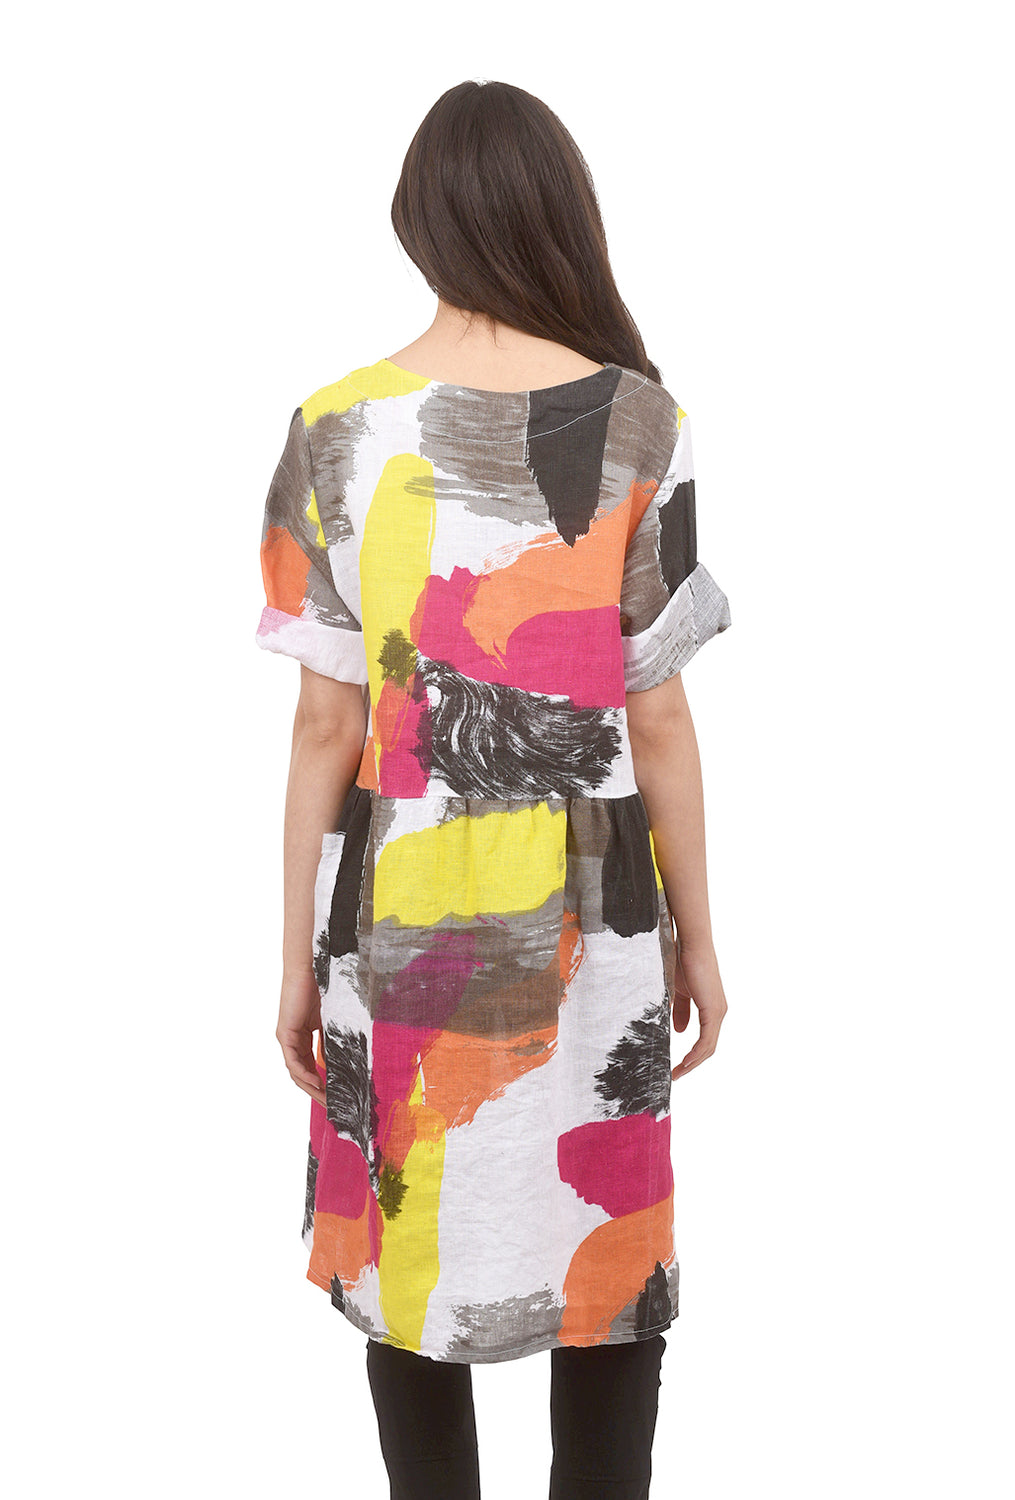 Bella Amore Watercolor Palette Dress, White